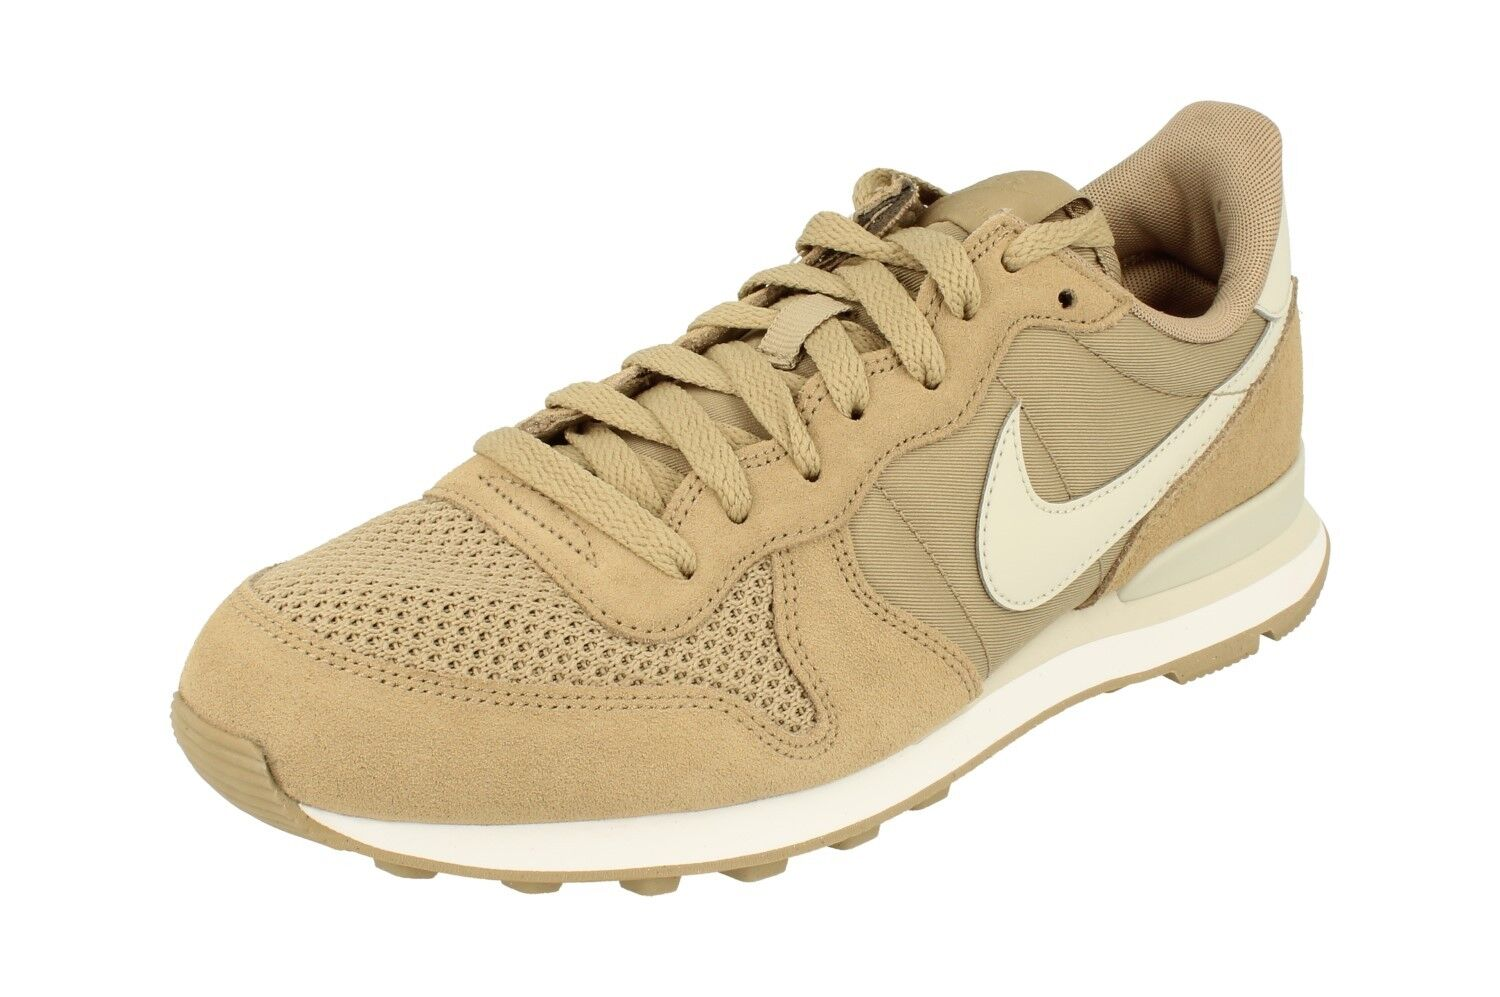 Nike Internationalist Se Mens Trainers Av8224 Sneakers Shoes 200